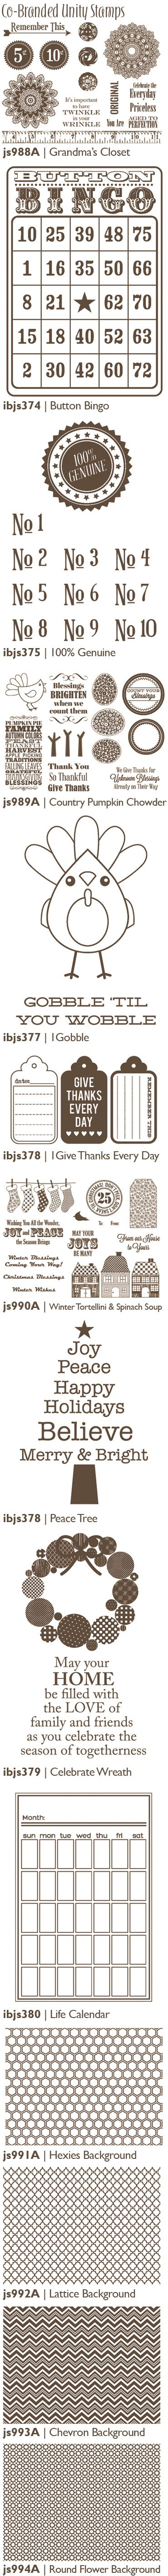 Co-Branded Unity Stamps Summer 2012 by Jillibean Soup (via the Jillibean Soup blog).